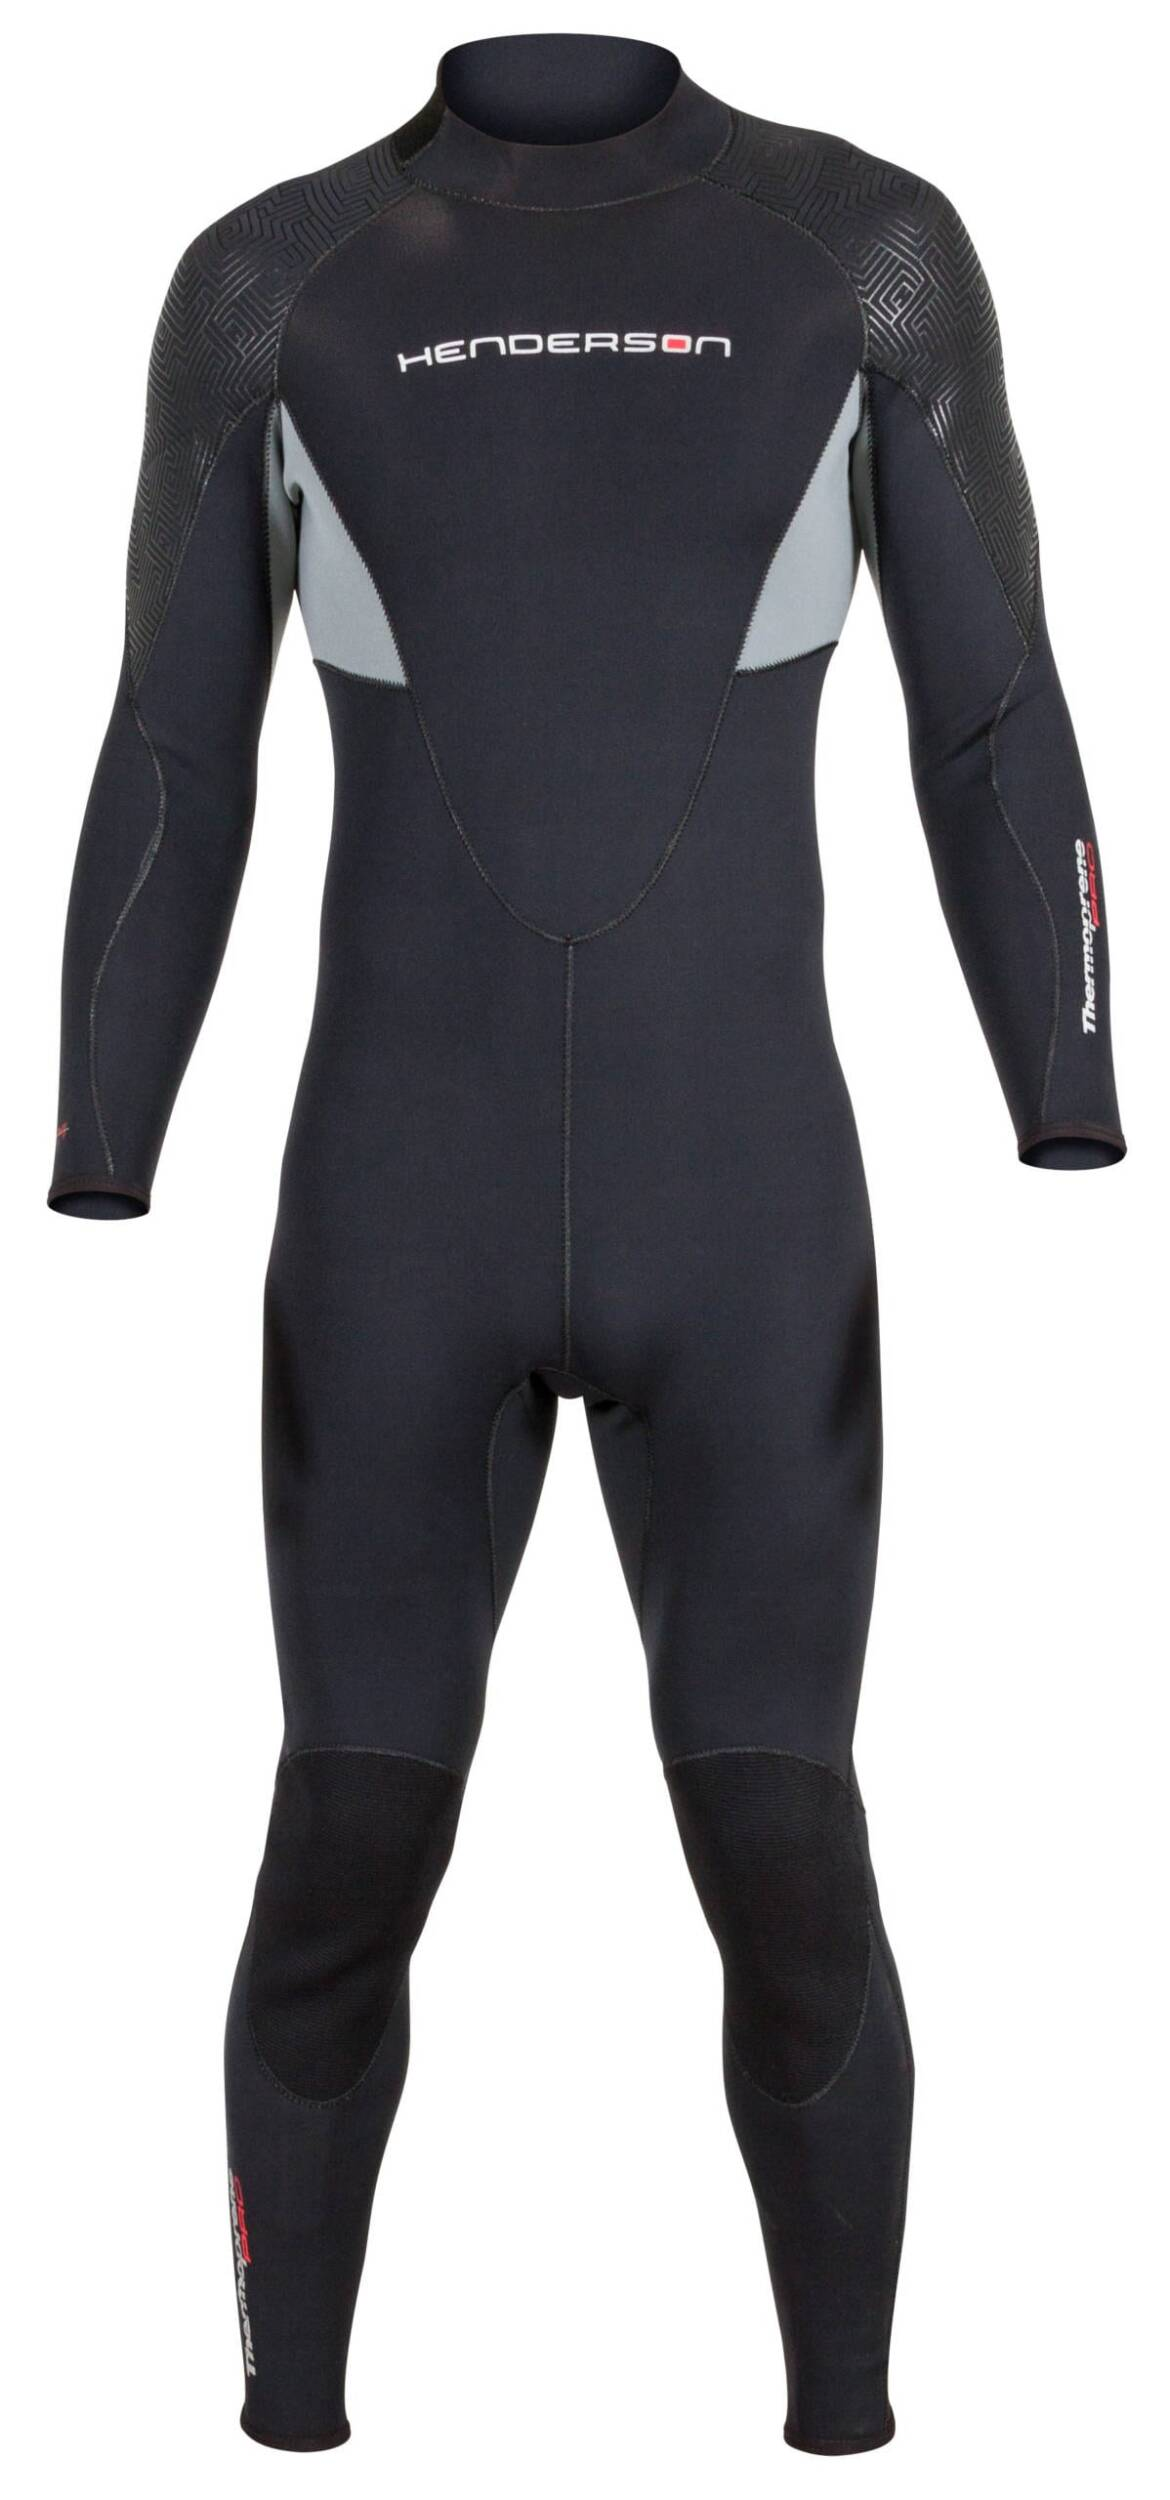 AP830MB_01_mens_thermoprene_pro_bz_black_FRONT_WEB-scaled.jpg